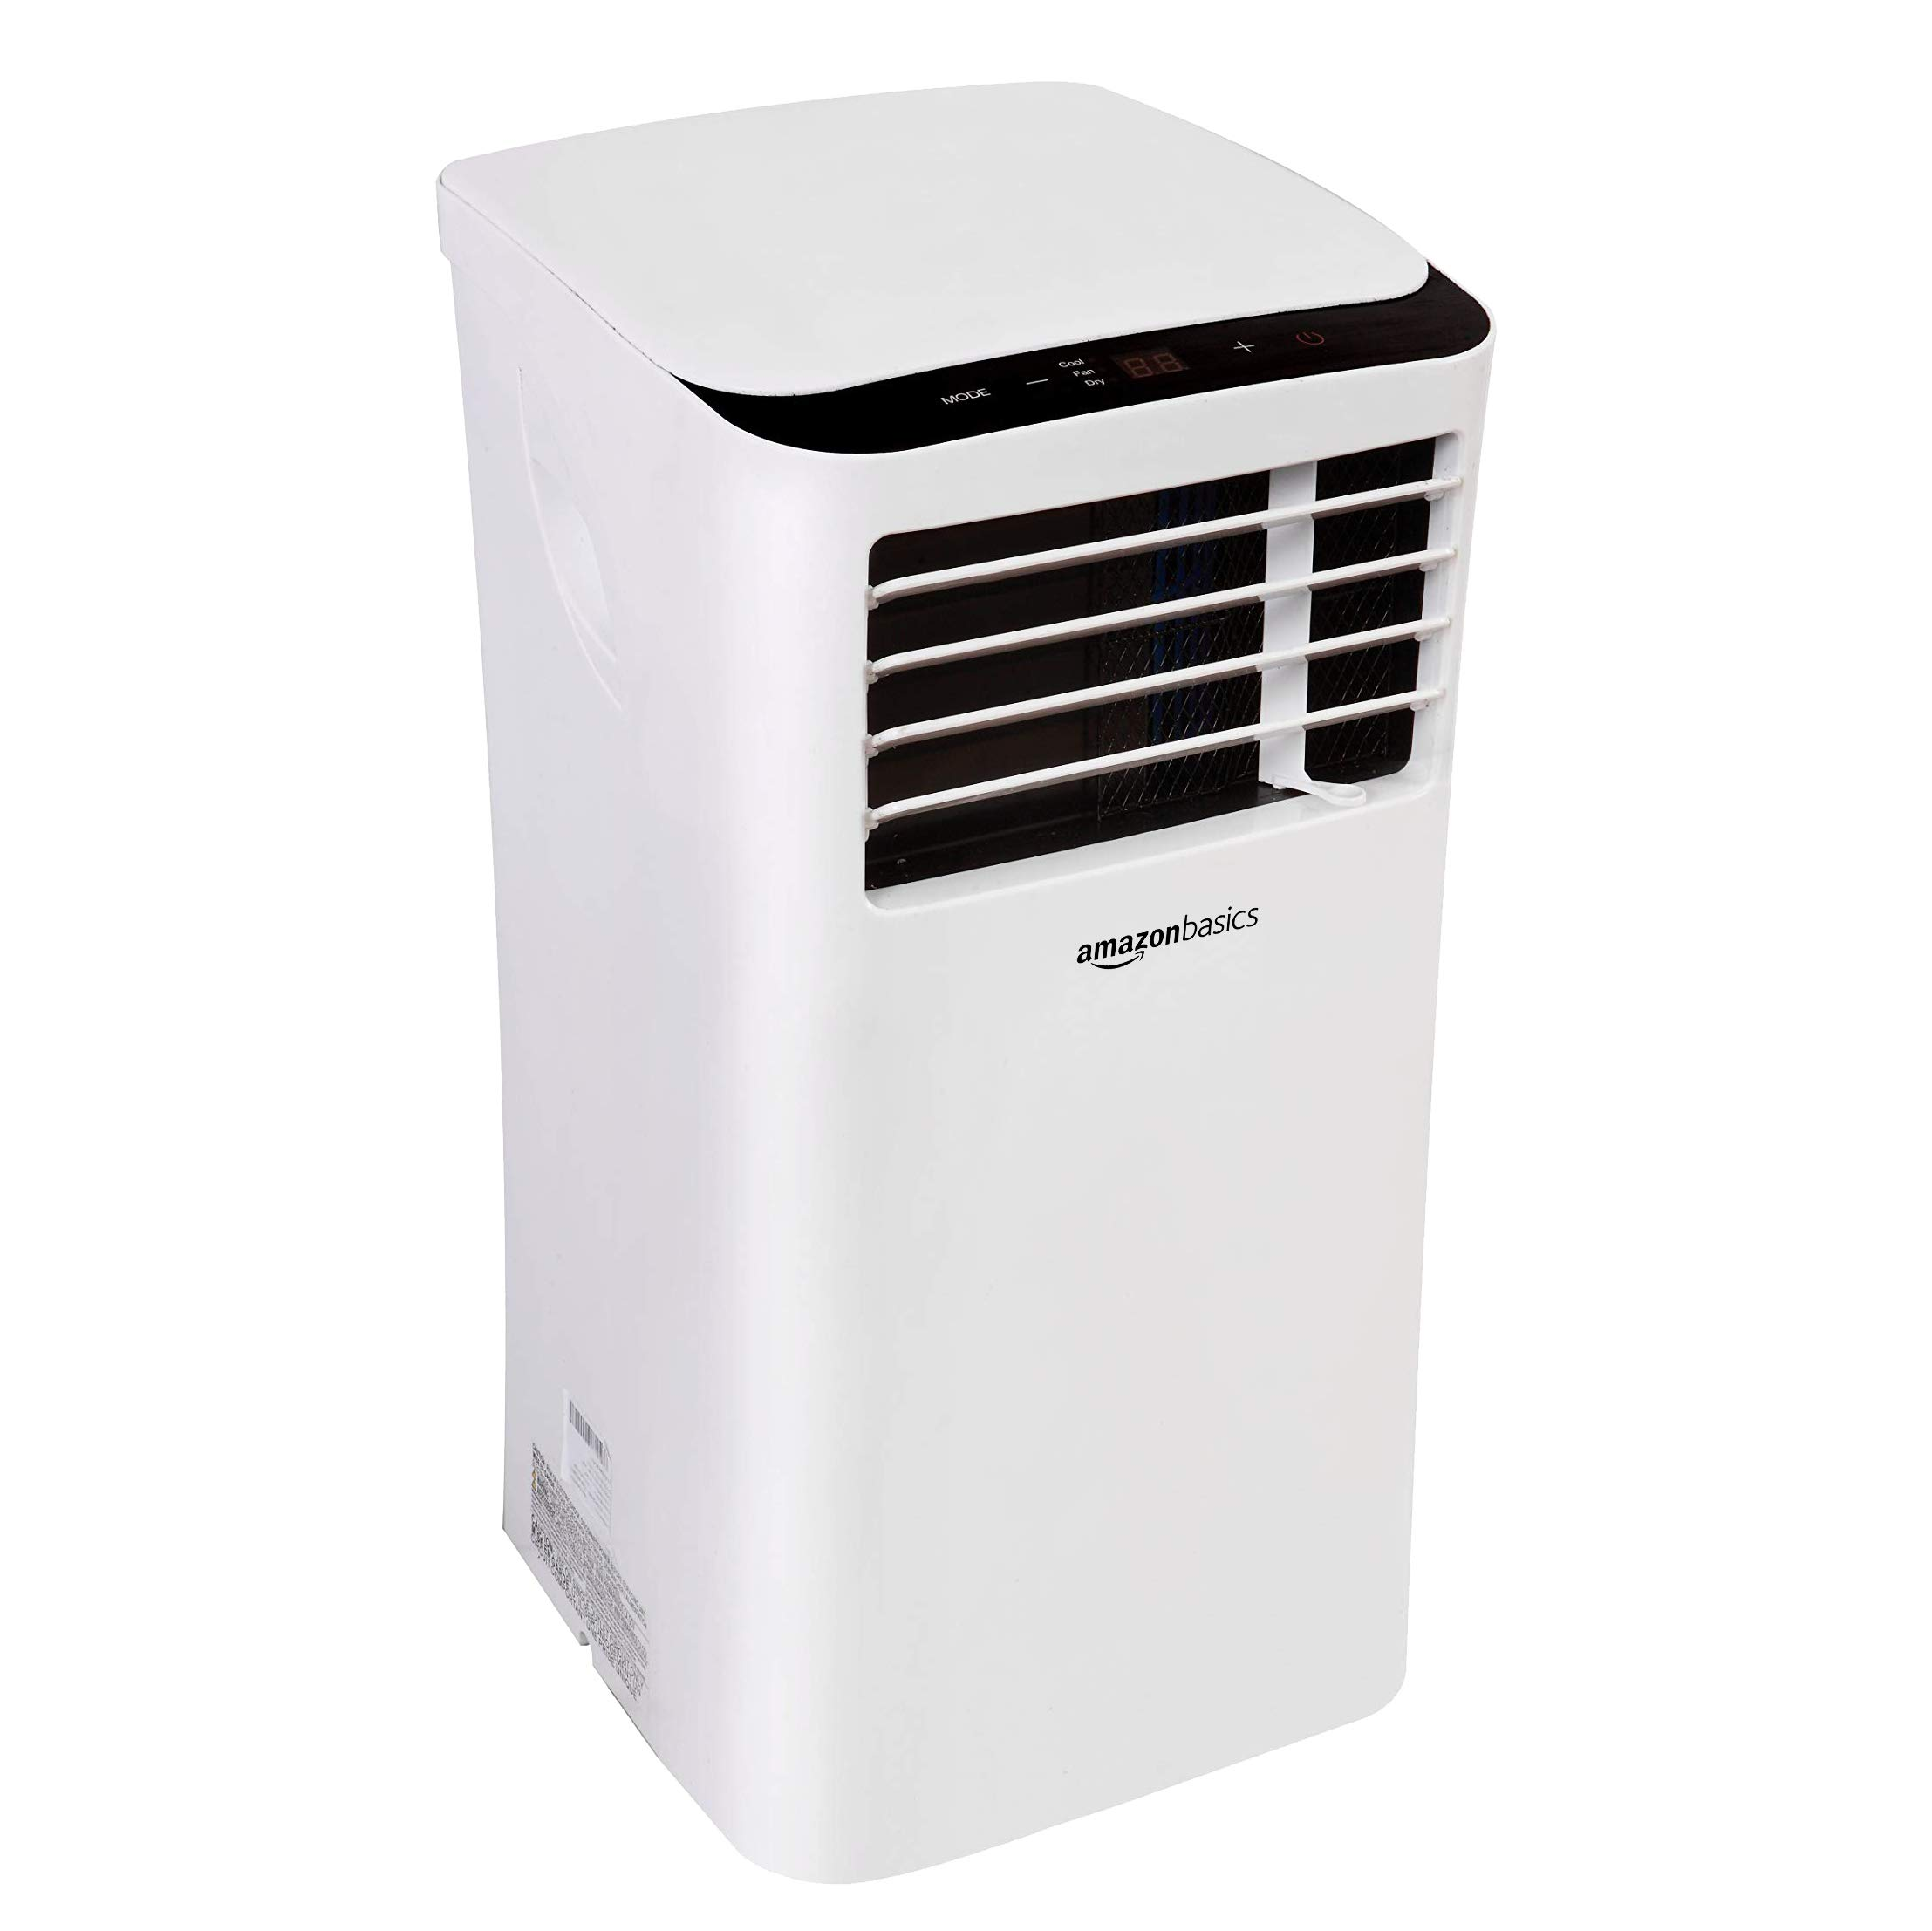 AmazonBasics Portable Air Conditioner with Remote - Cools 400 Square Feet, 10,000 BTU by AmazonBasics